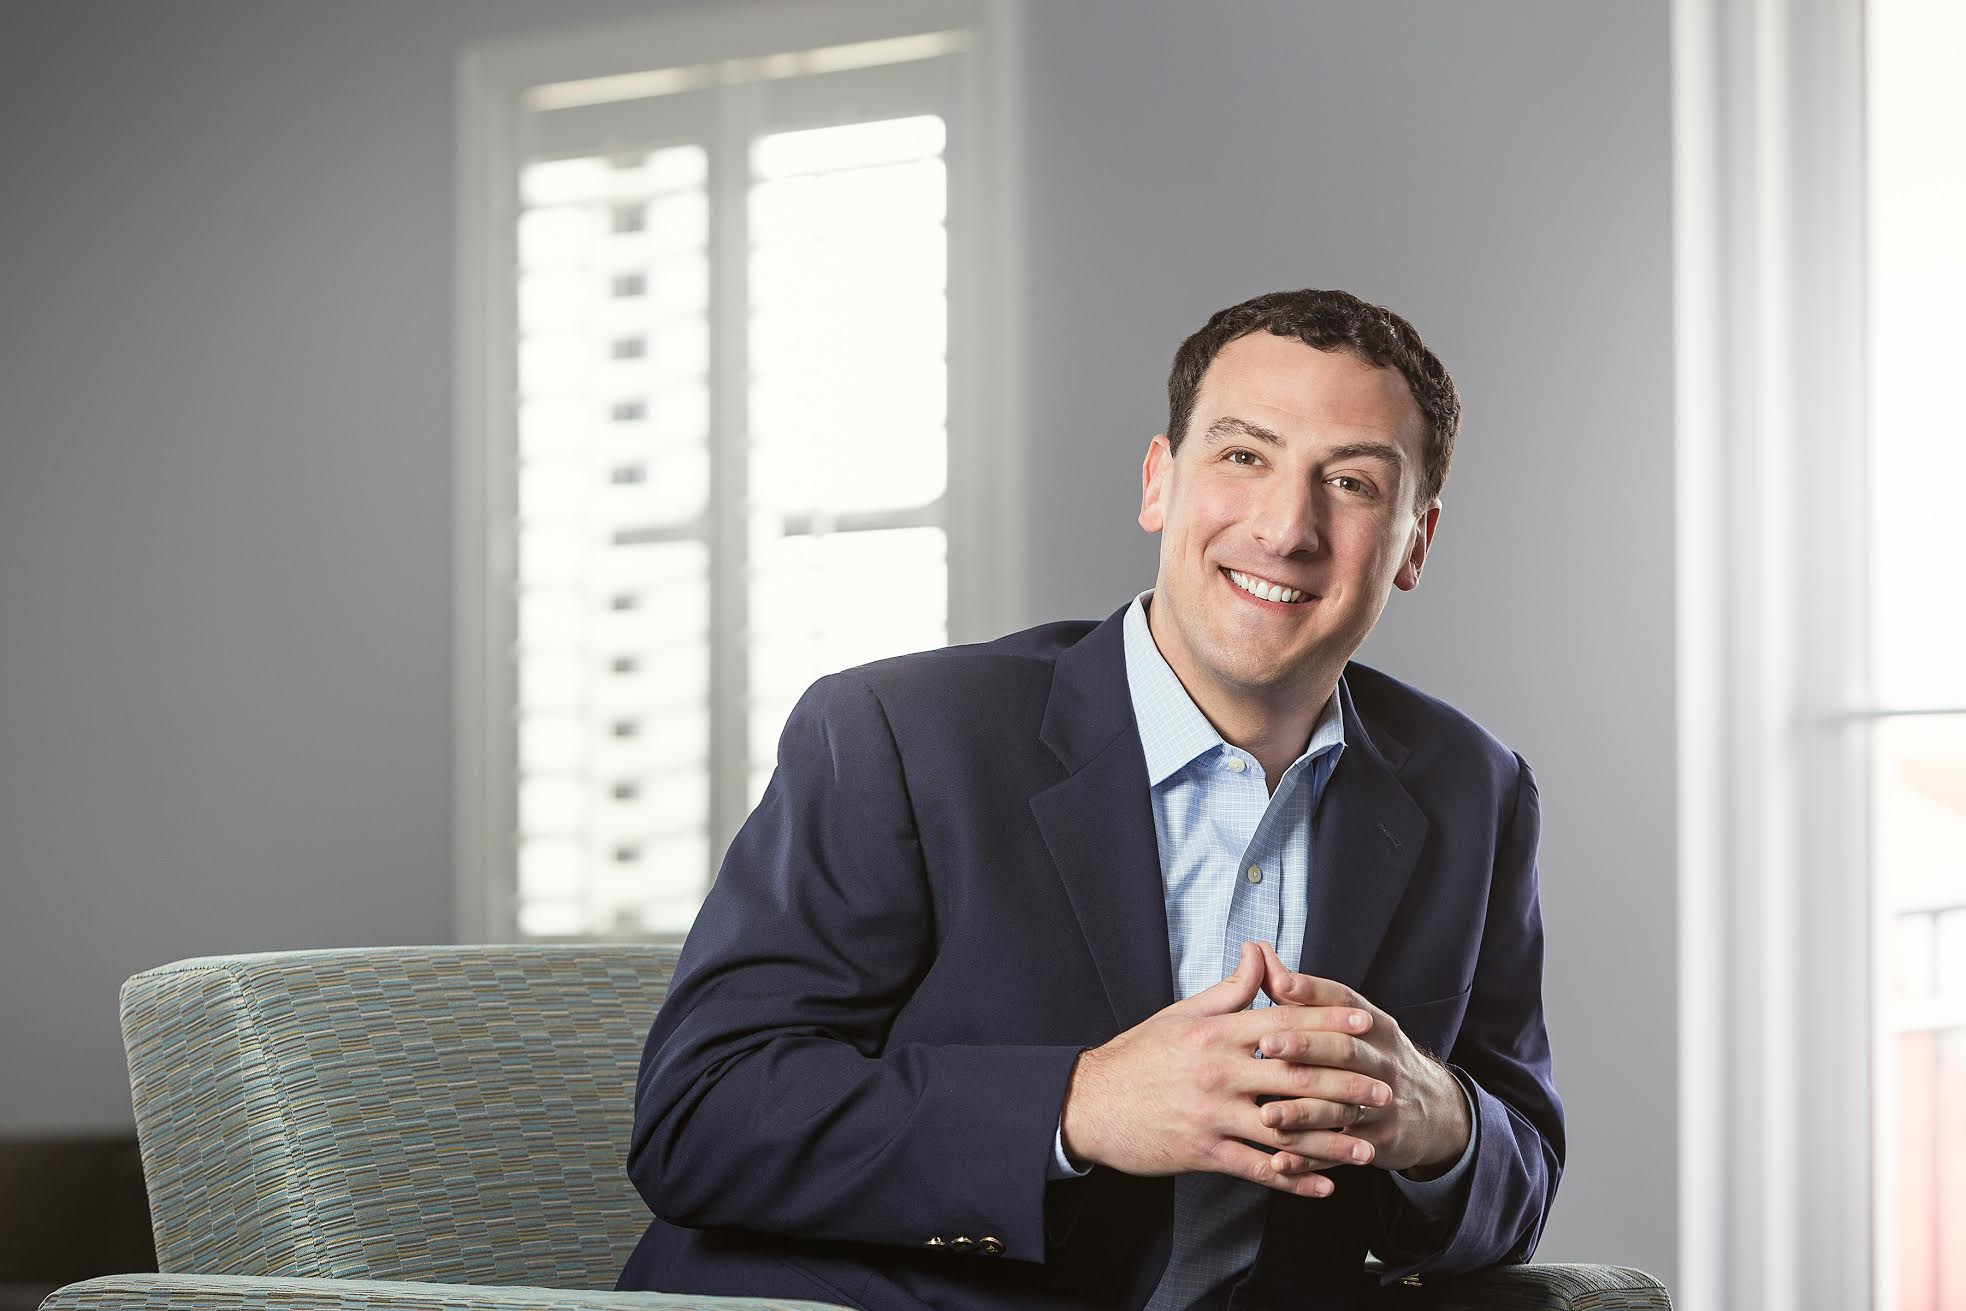 "Isaac Lidsky, CEO, Author – entrepreneur - ""The value of a bright idea or moving story is realized only in its communication. In this art of expression, Katerina is masterful. I'm eternally grateful for her help shaping my vision into an experience of impact for others."" // Isaac's TED talk has more than 3 million views."